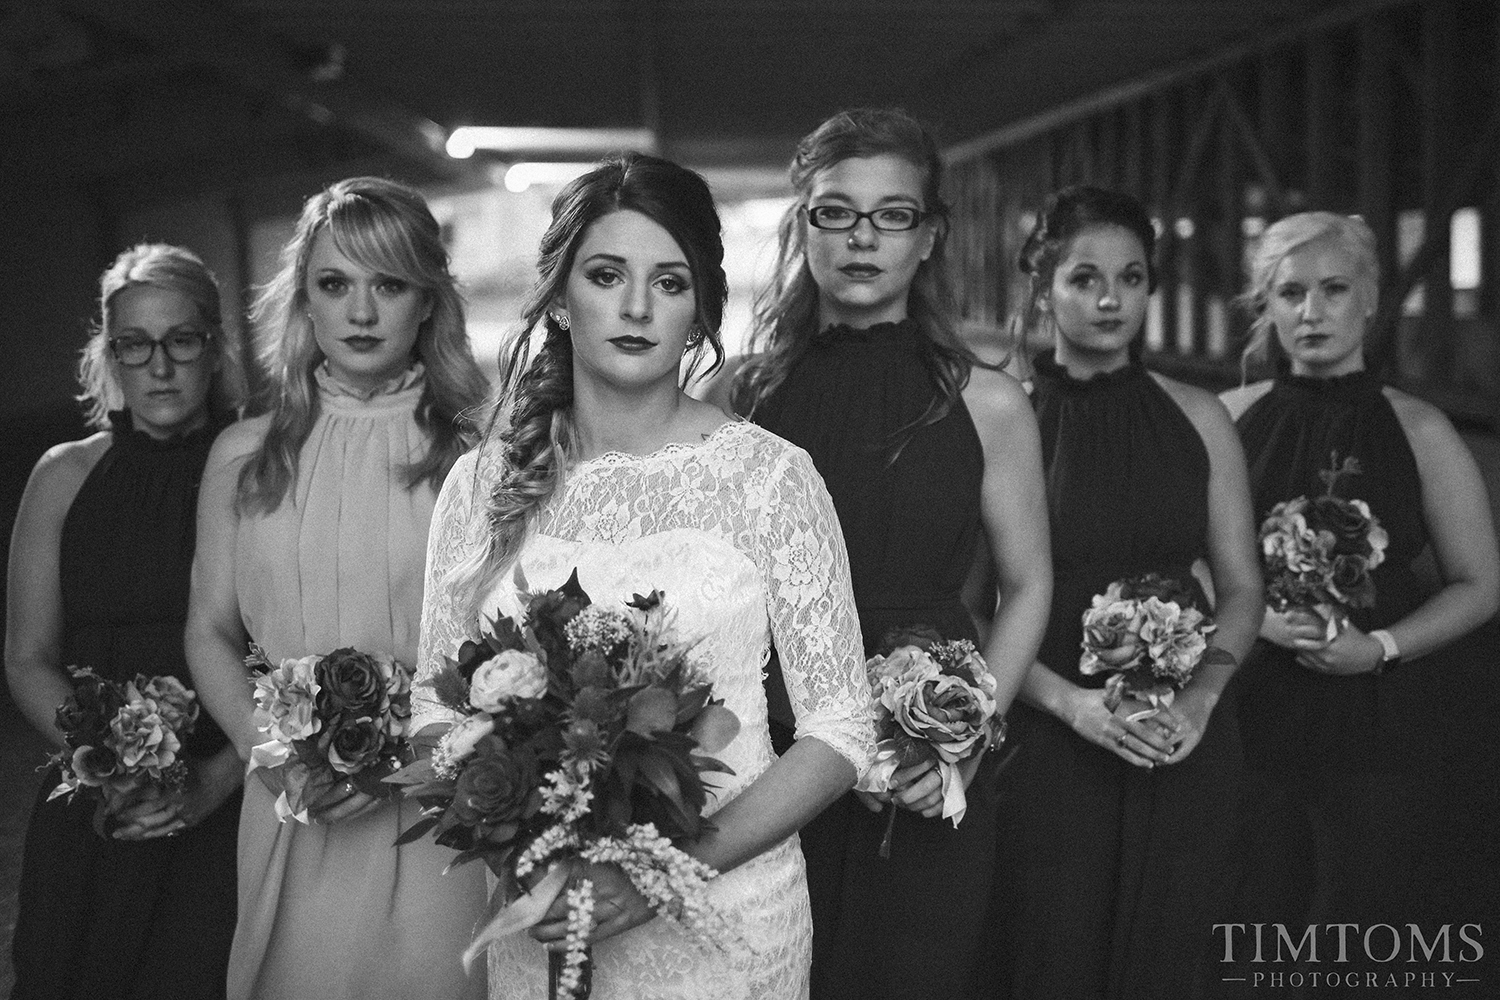 Wedding Photography Tim Toms